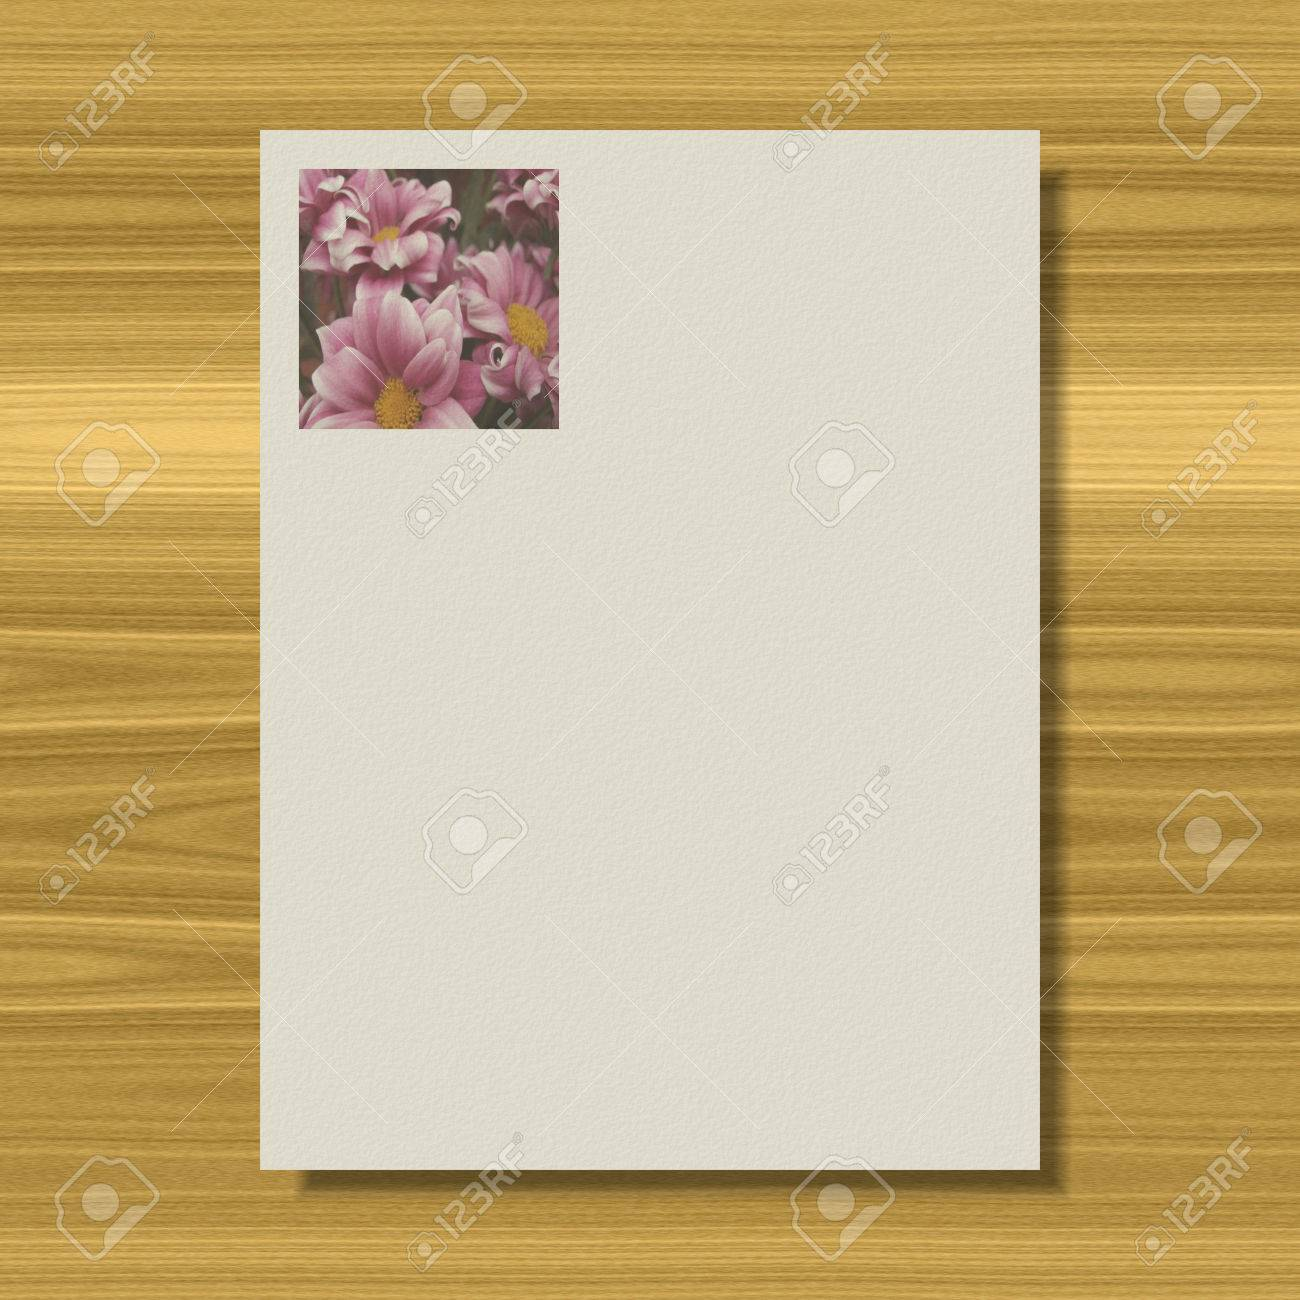 Flowers Writing Paper Texture Background Stock Photo Picture And